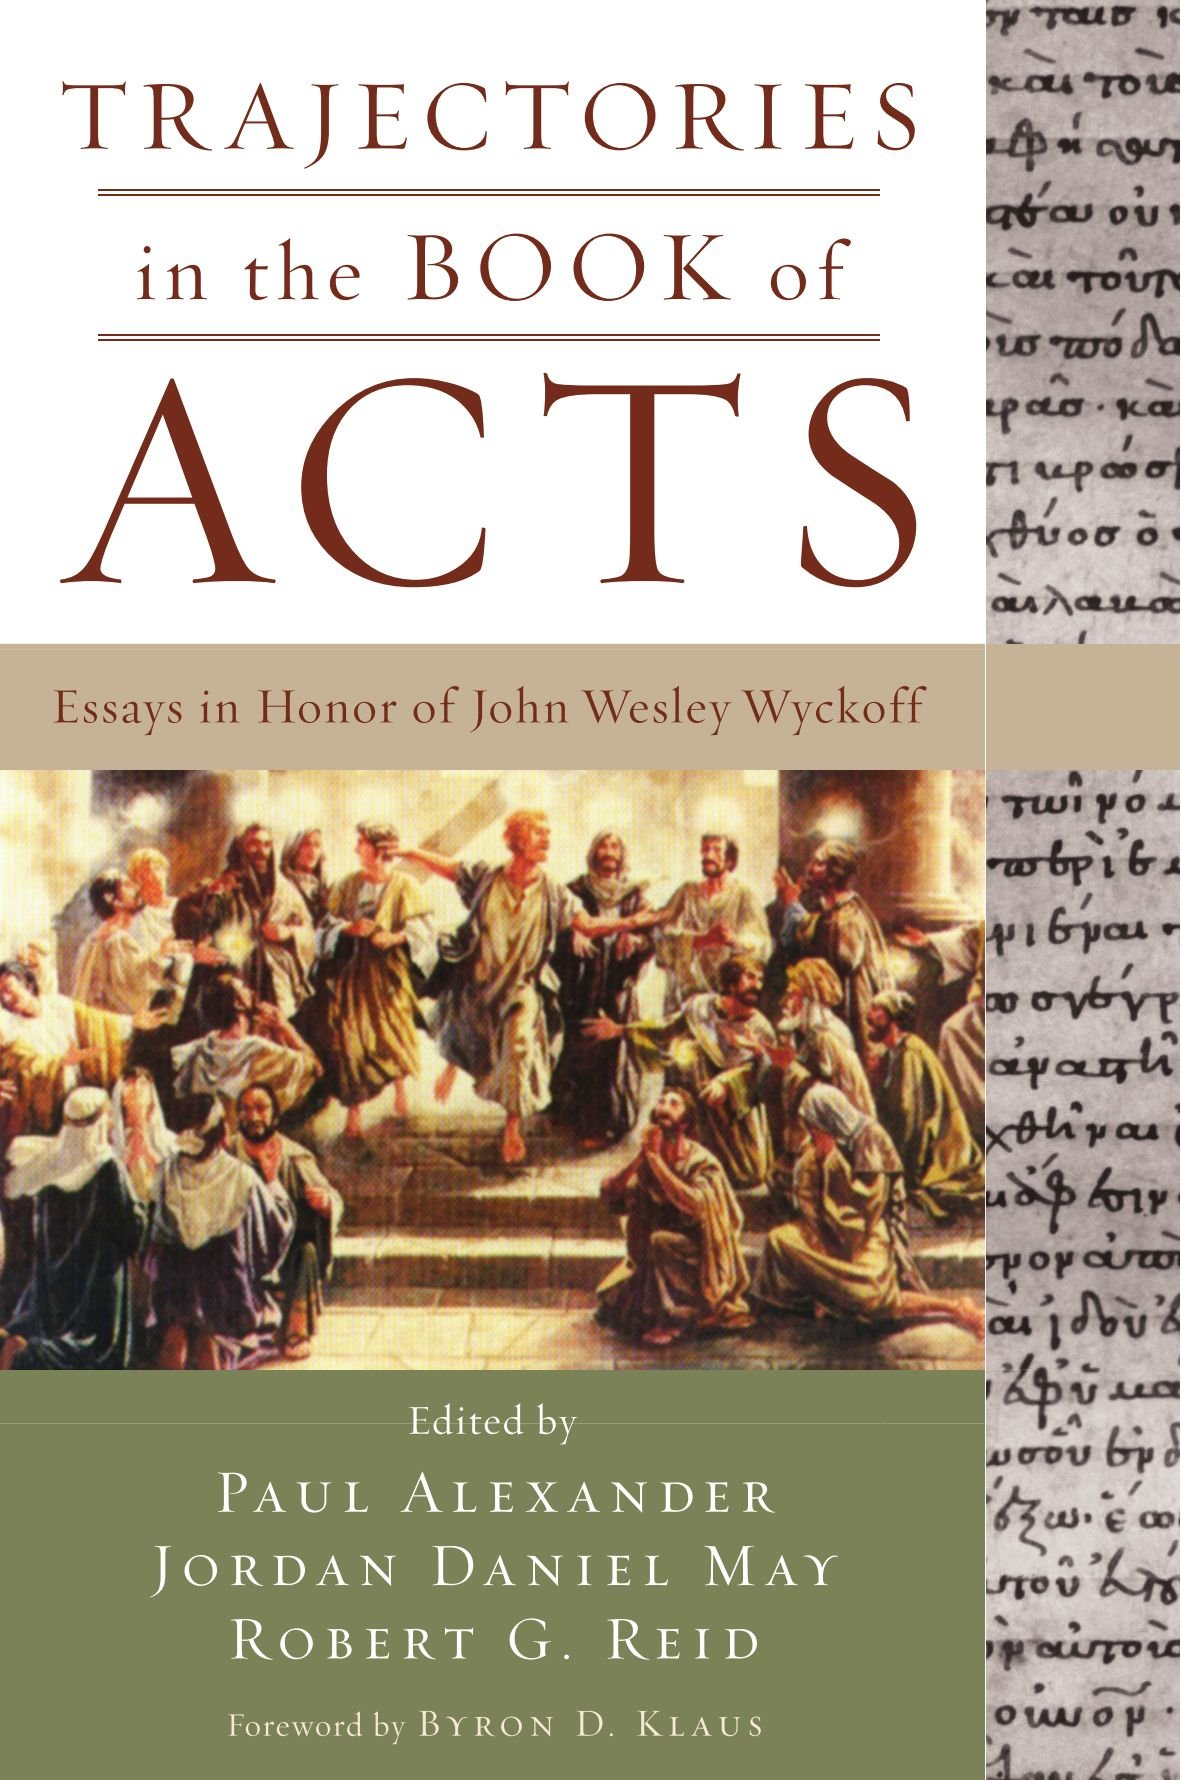 trajectories in the book of acts essays in honor of john wesley trajectories in the book of acts essays in honor of john wesley wyckoff daniel robert g reid paul alexander 9781606085400 com